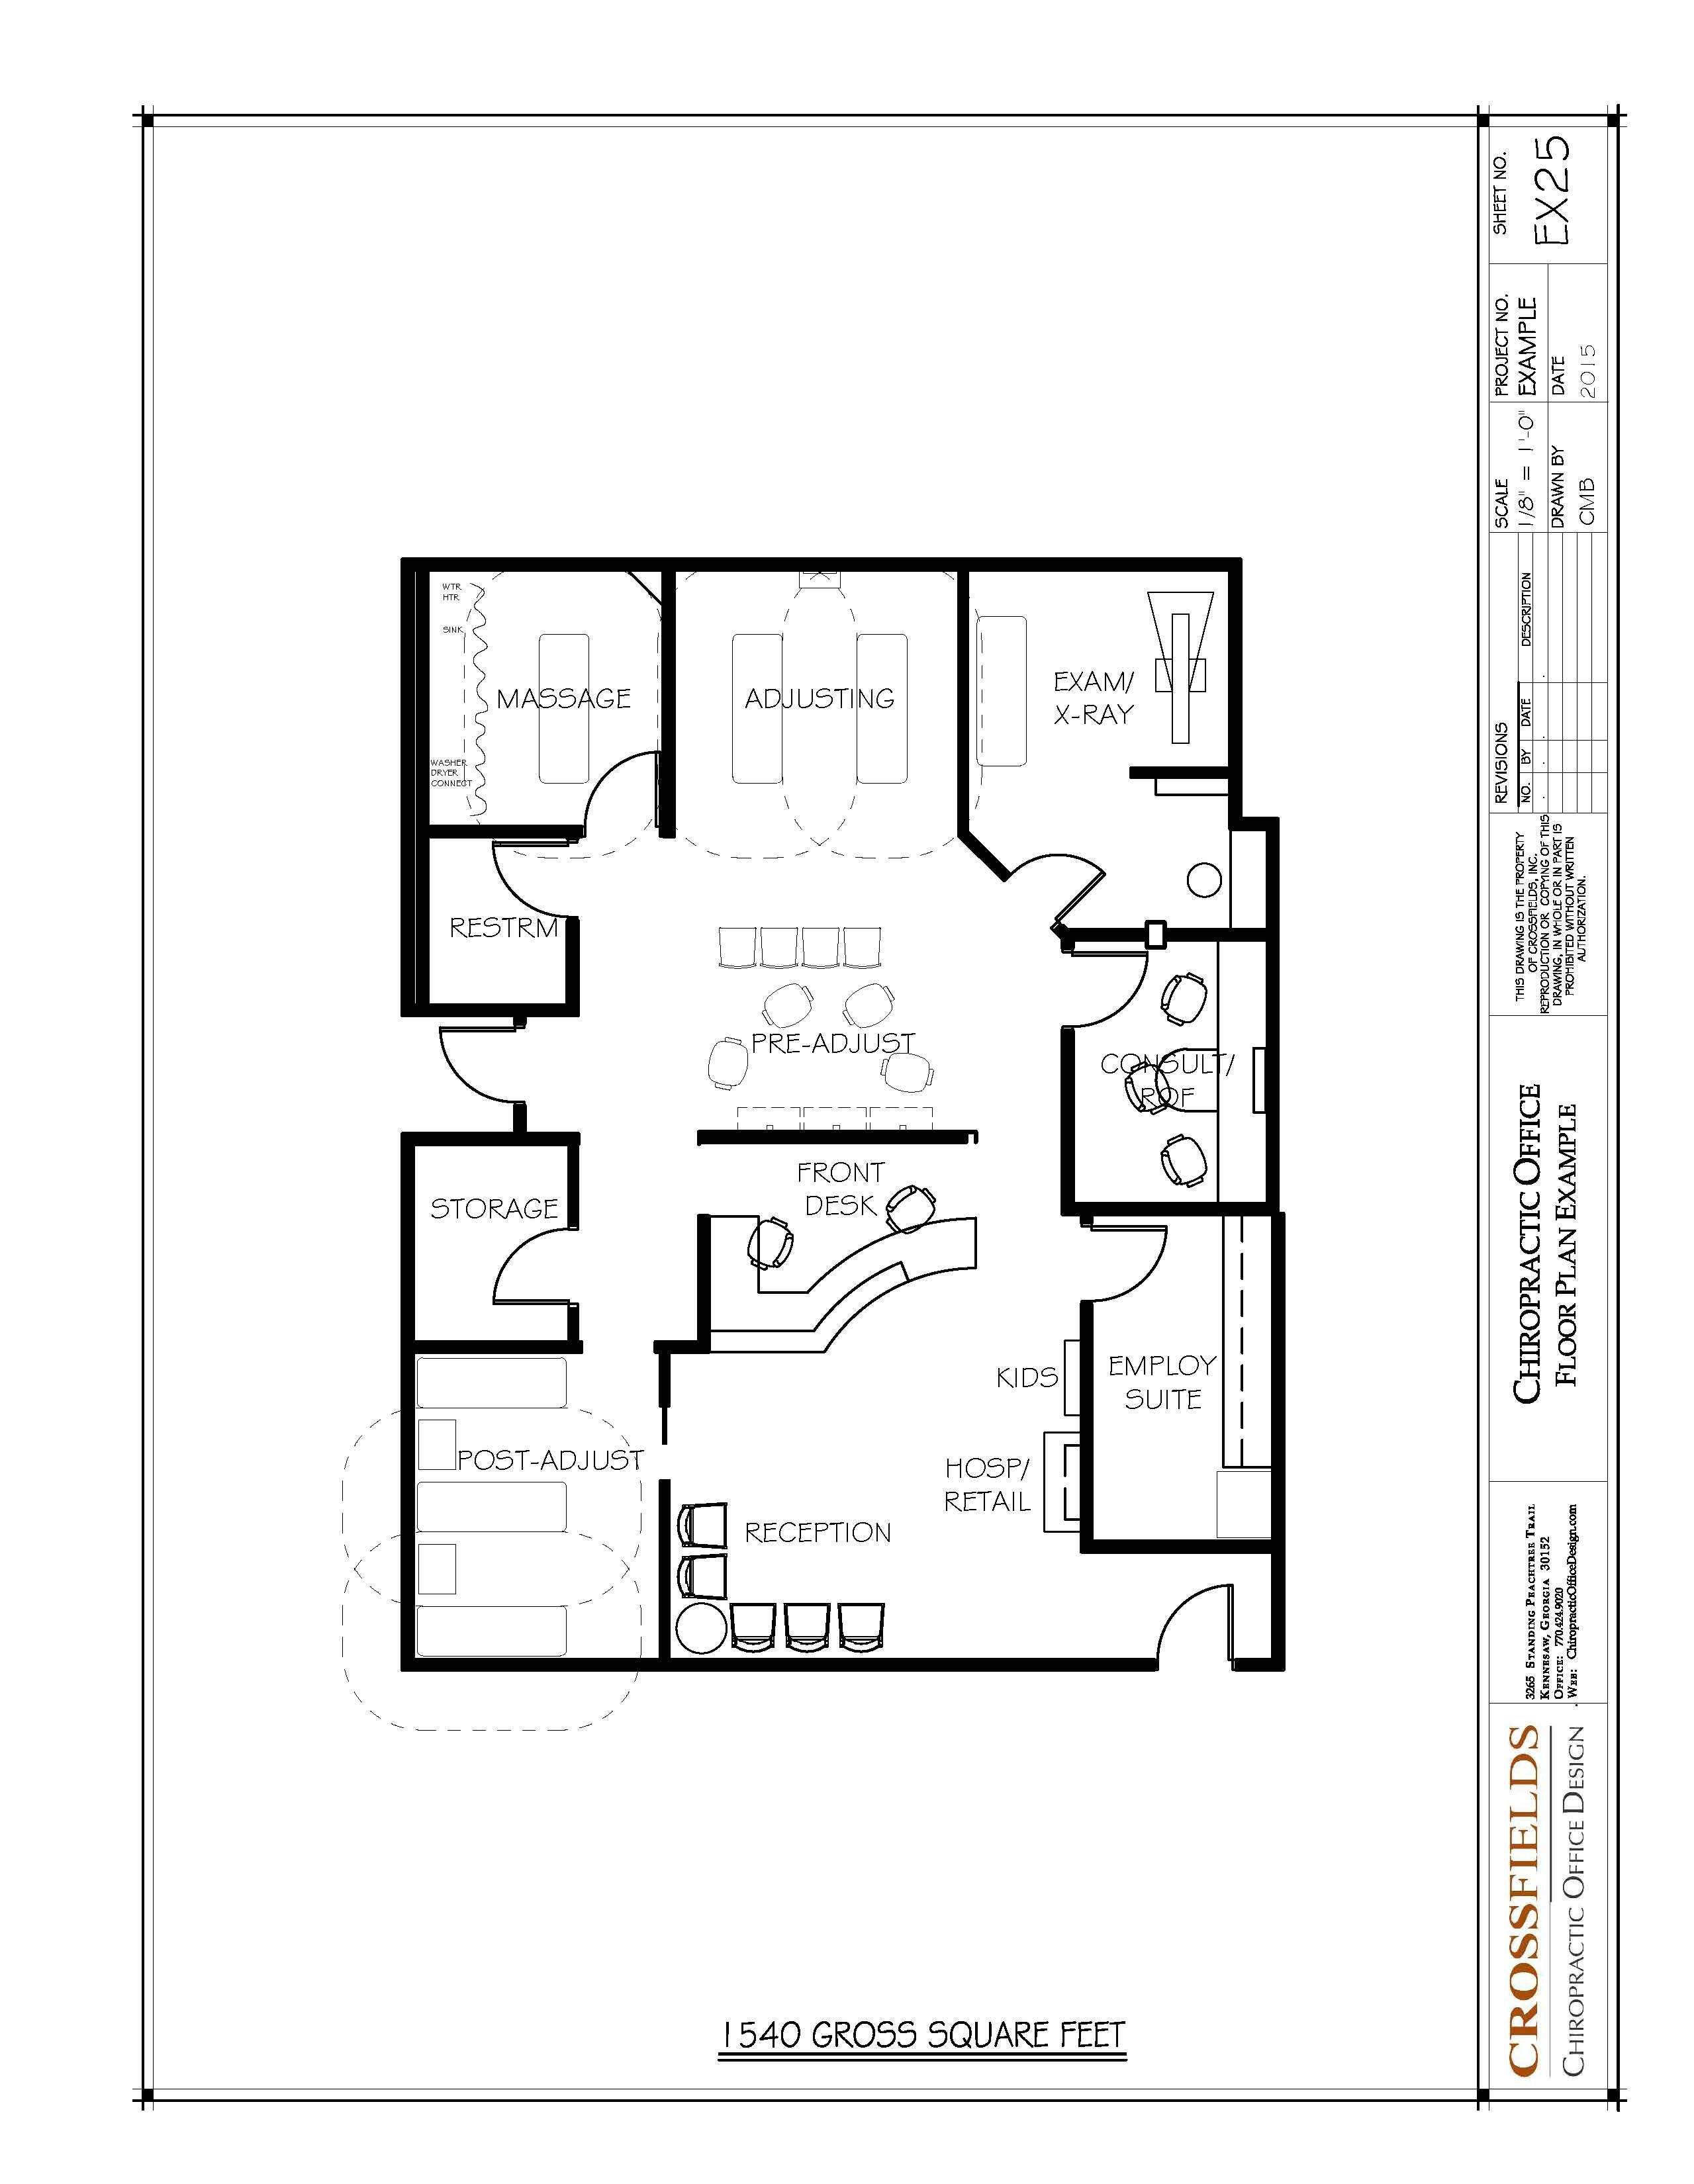 Chiropractic office floor plans pinteres for Floor plan layout